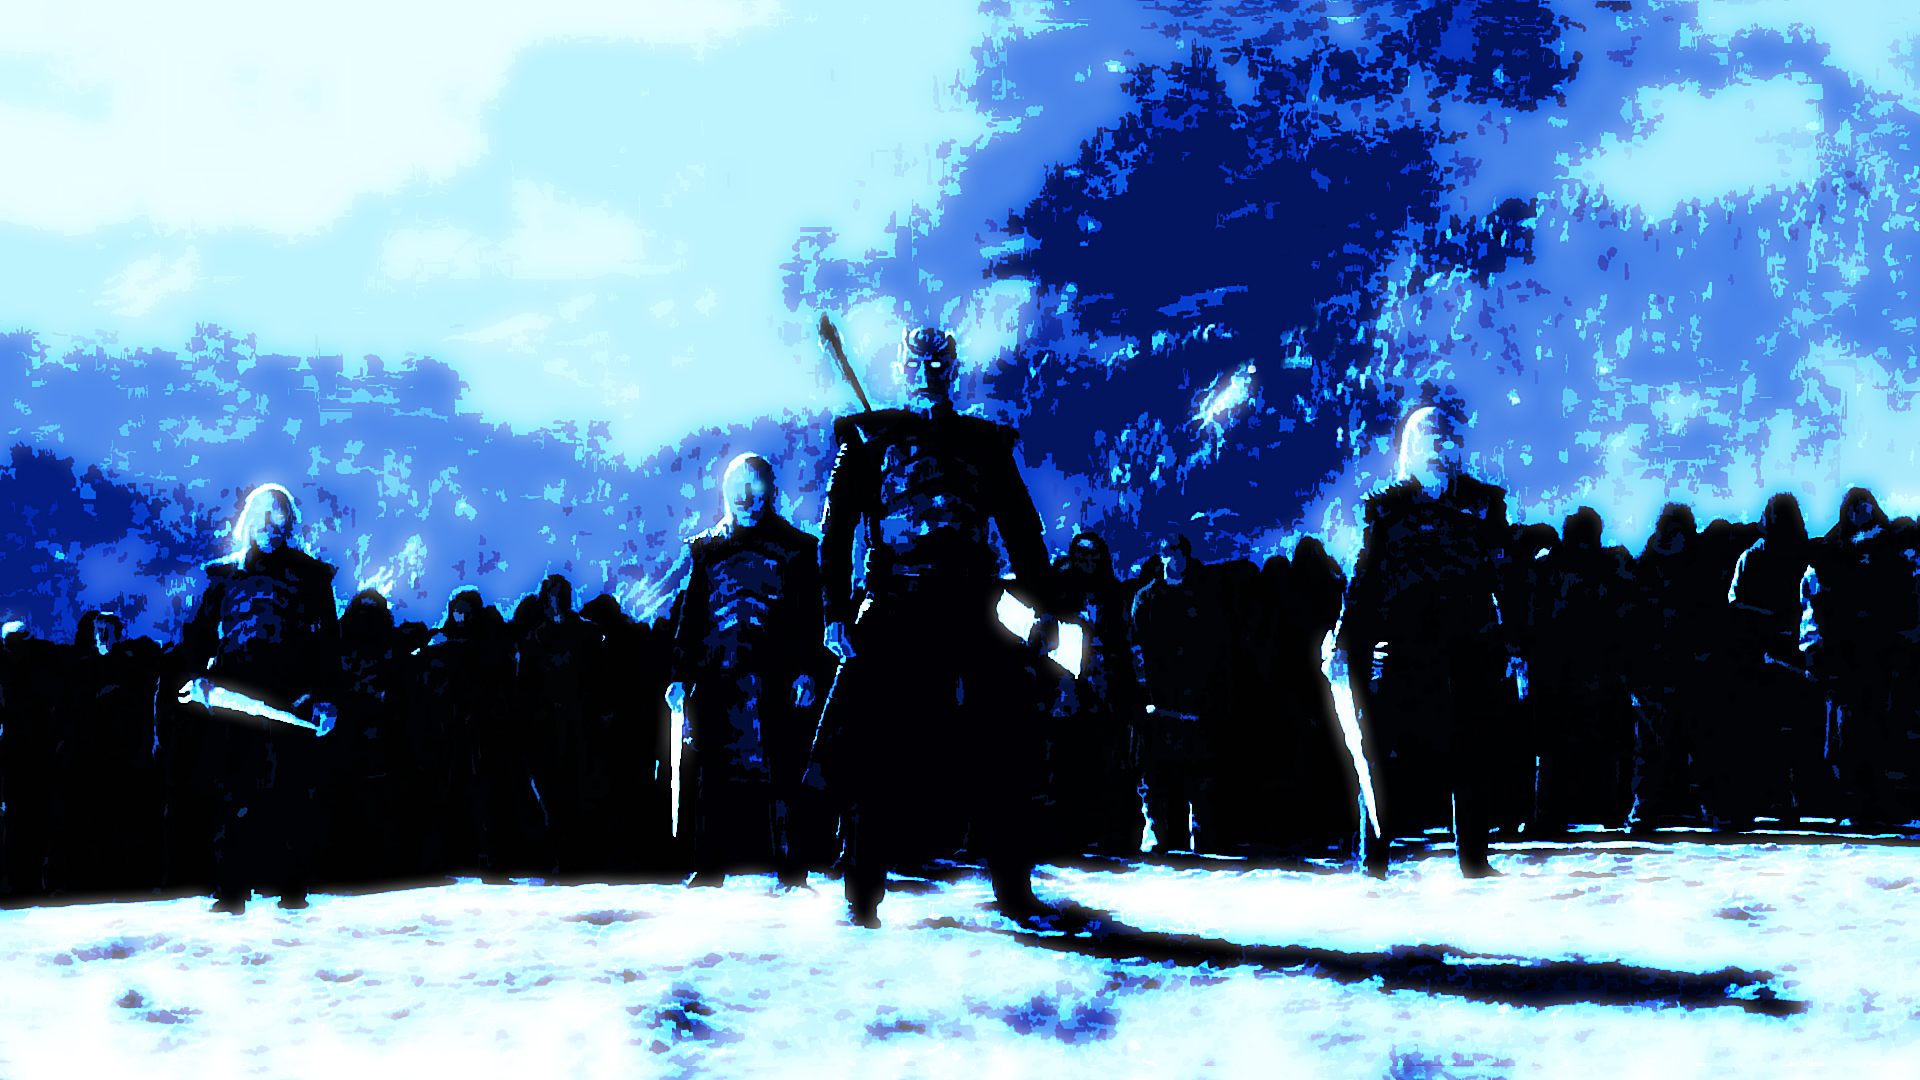 Game Of Thrones The Night S King Army By Smushrcz On Deviantart